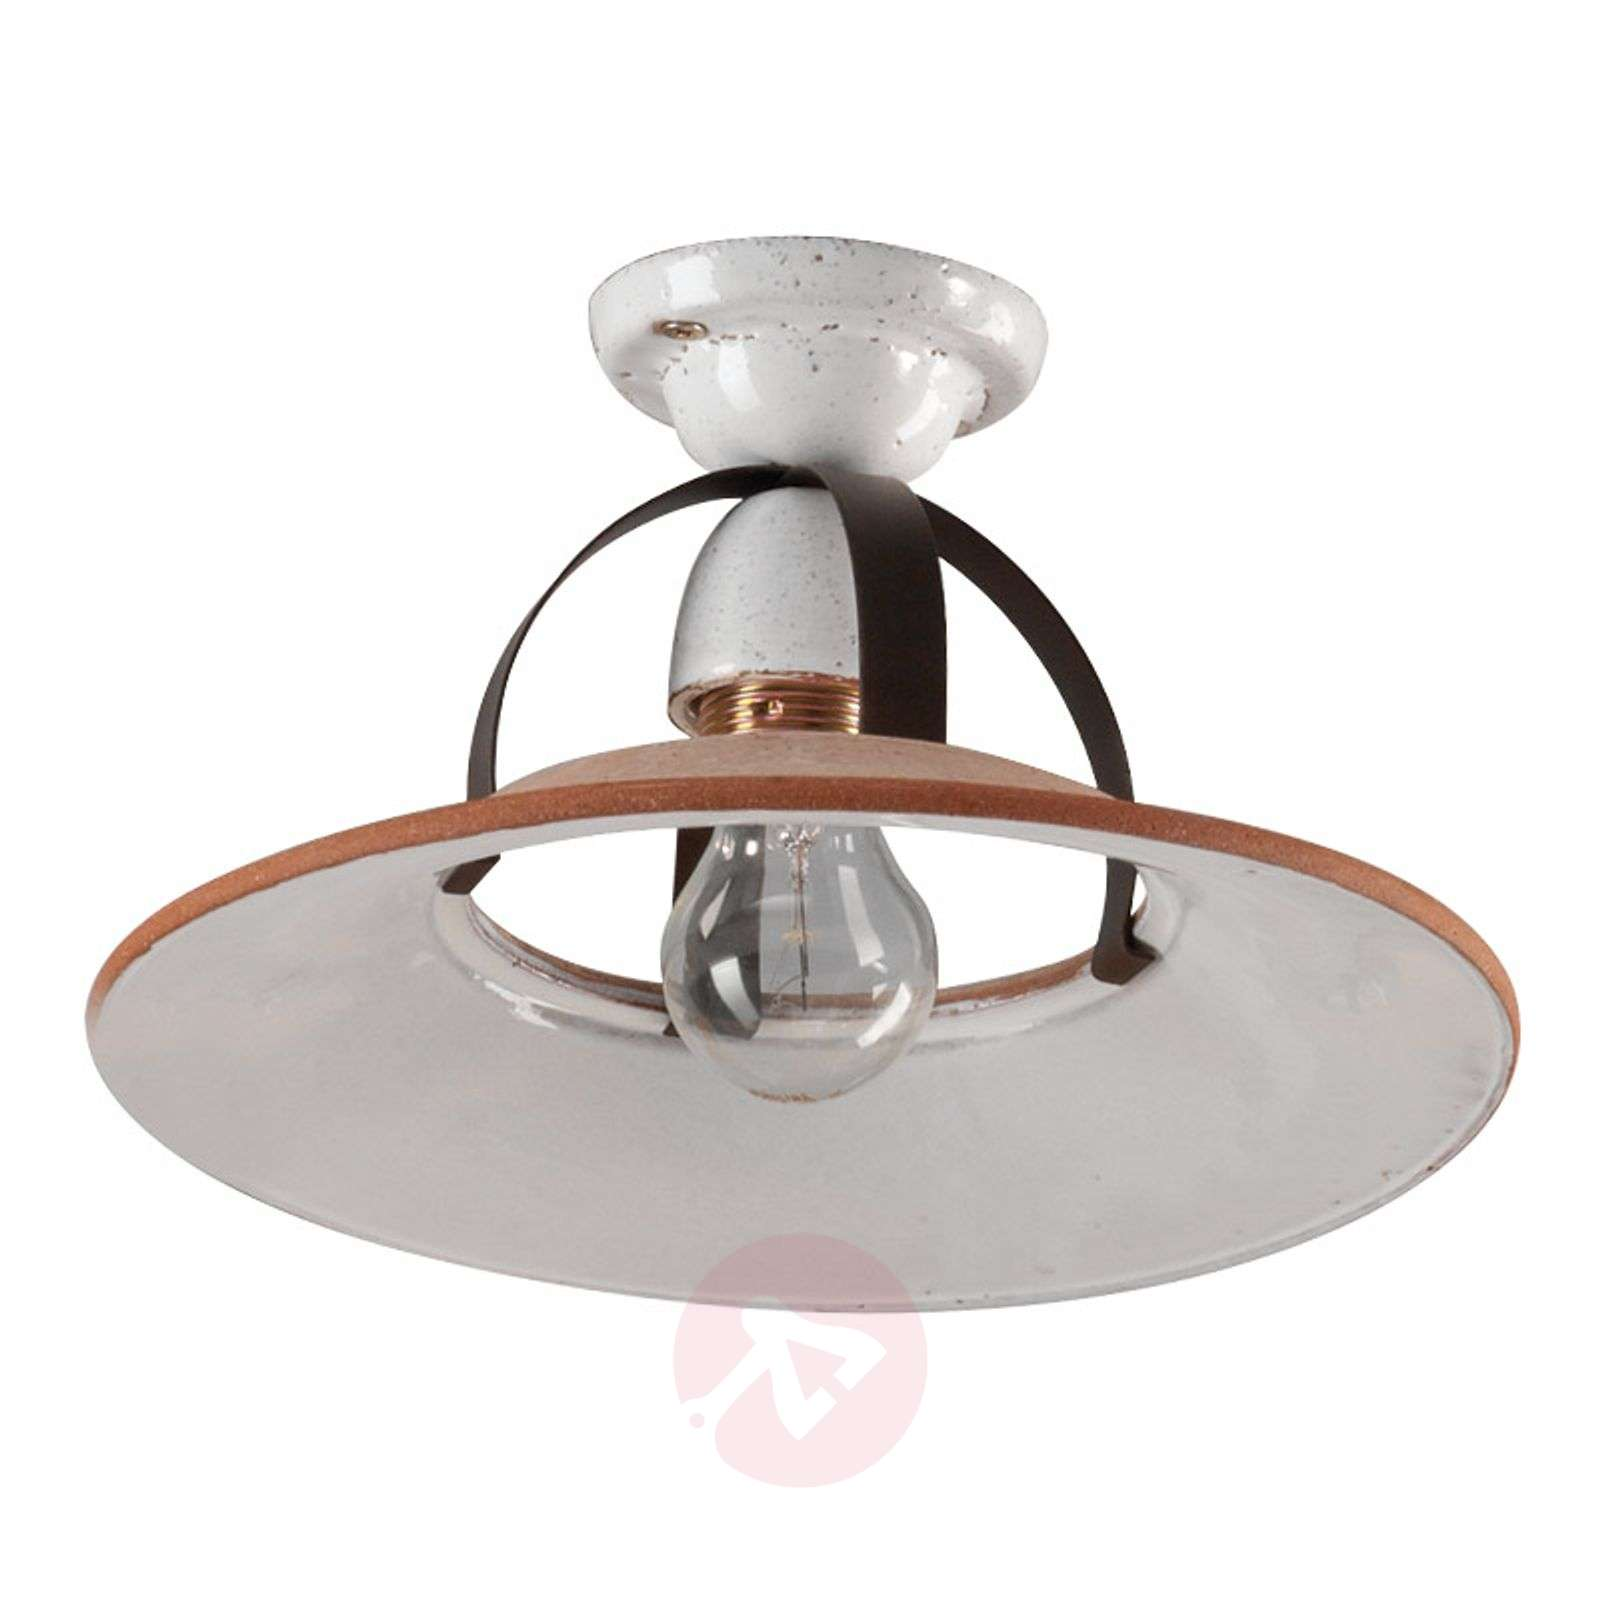 Semi flush ceramic ceiling light rubino lights semi flush ceramic ceiling light rubino 3046093 01 aloadofball Image collections